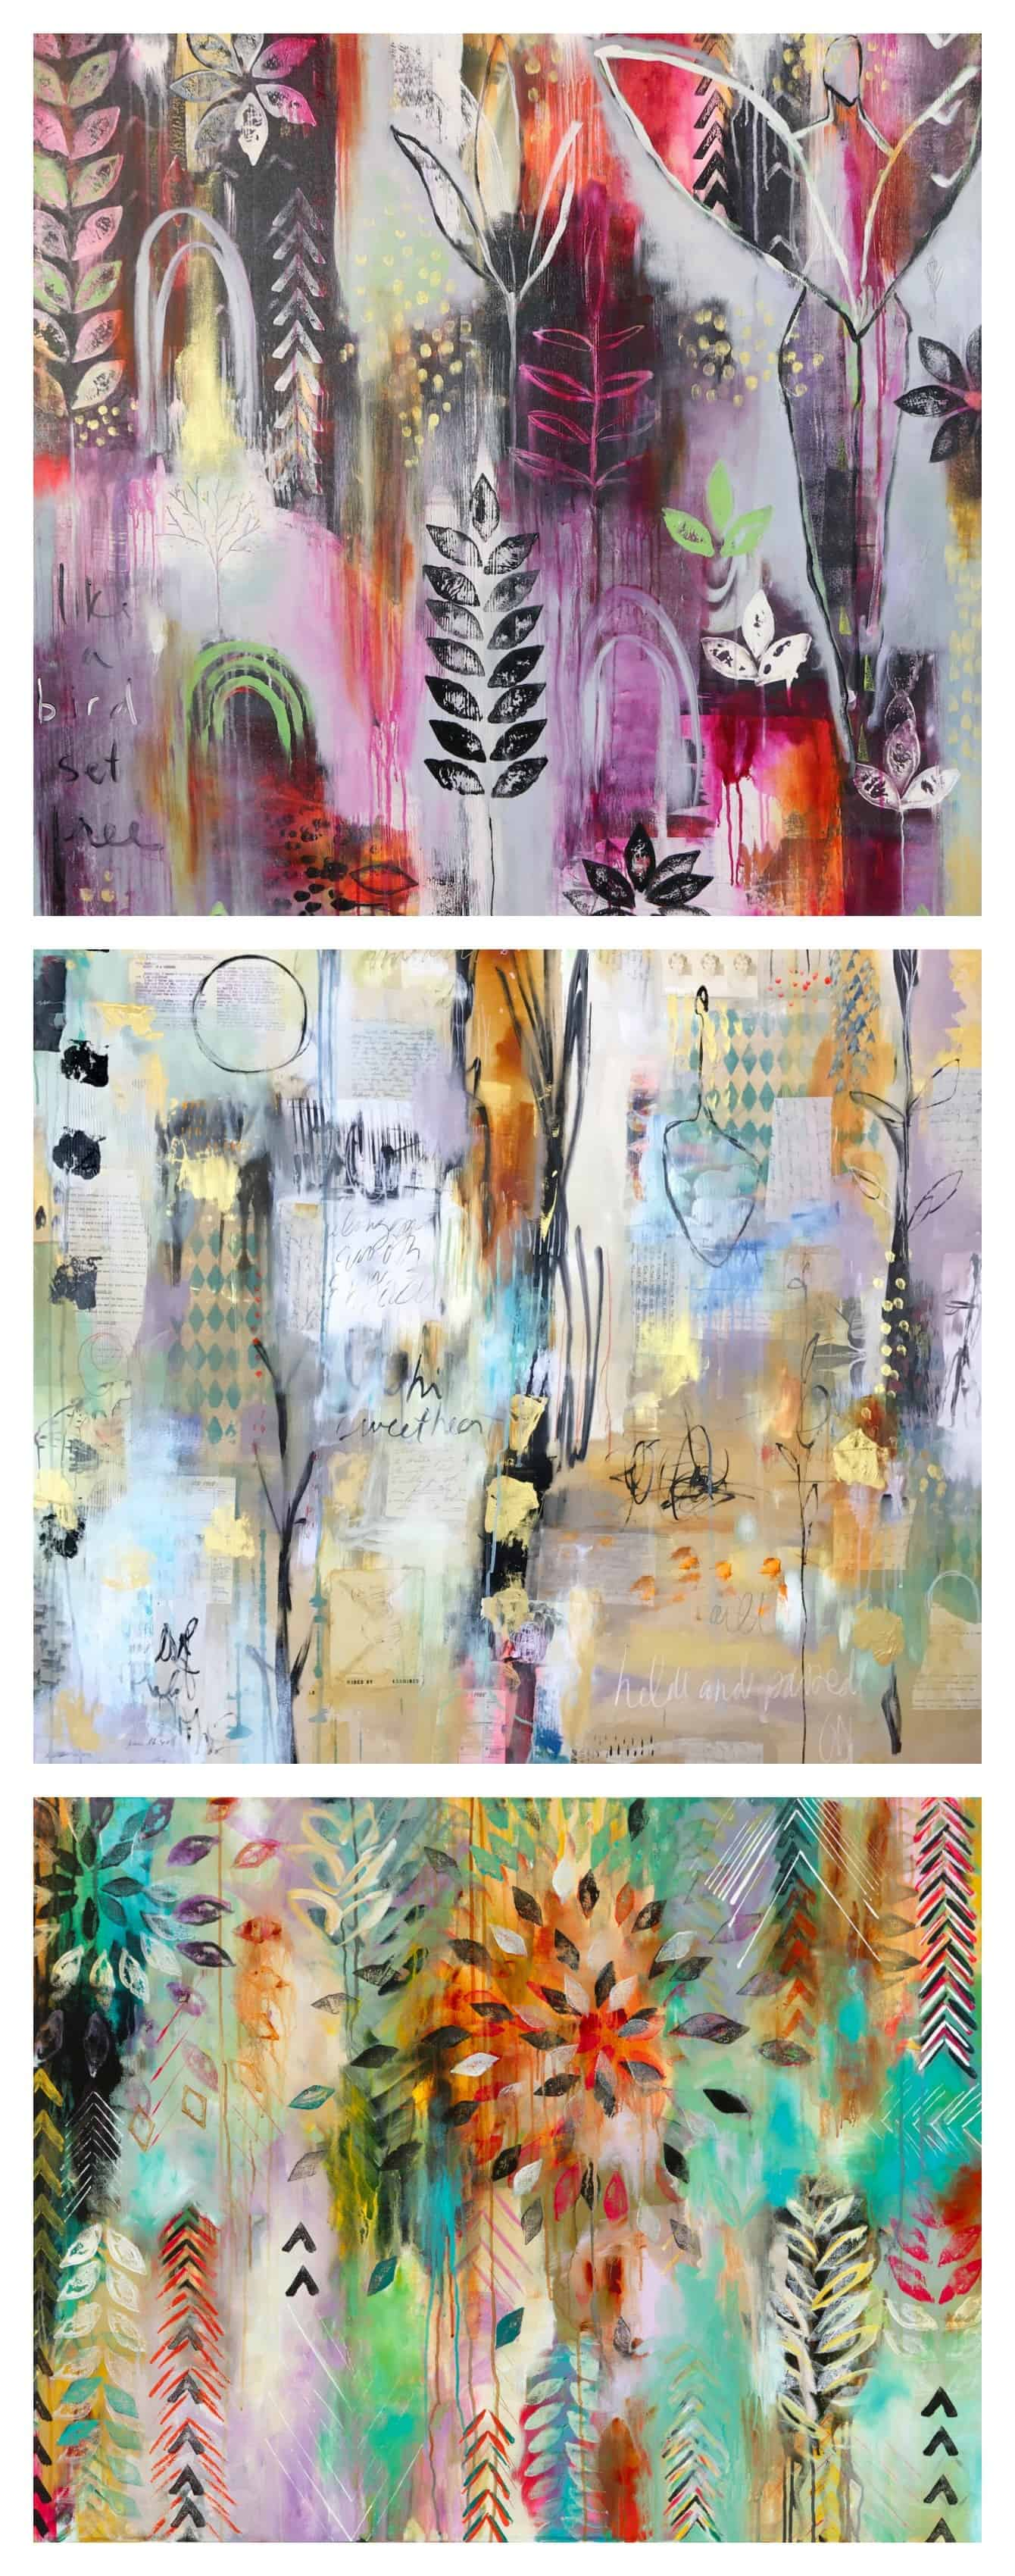 Flora Bowley abstract paintings